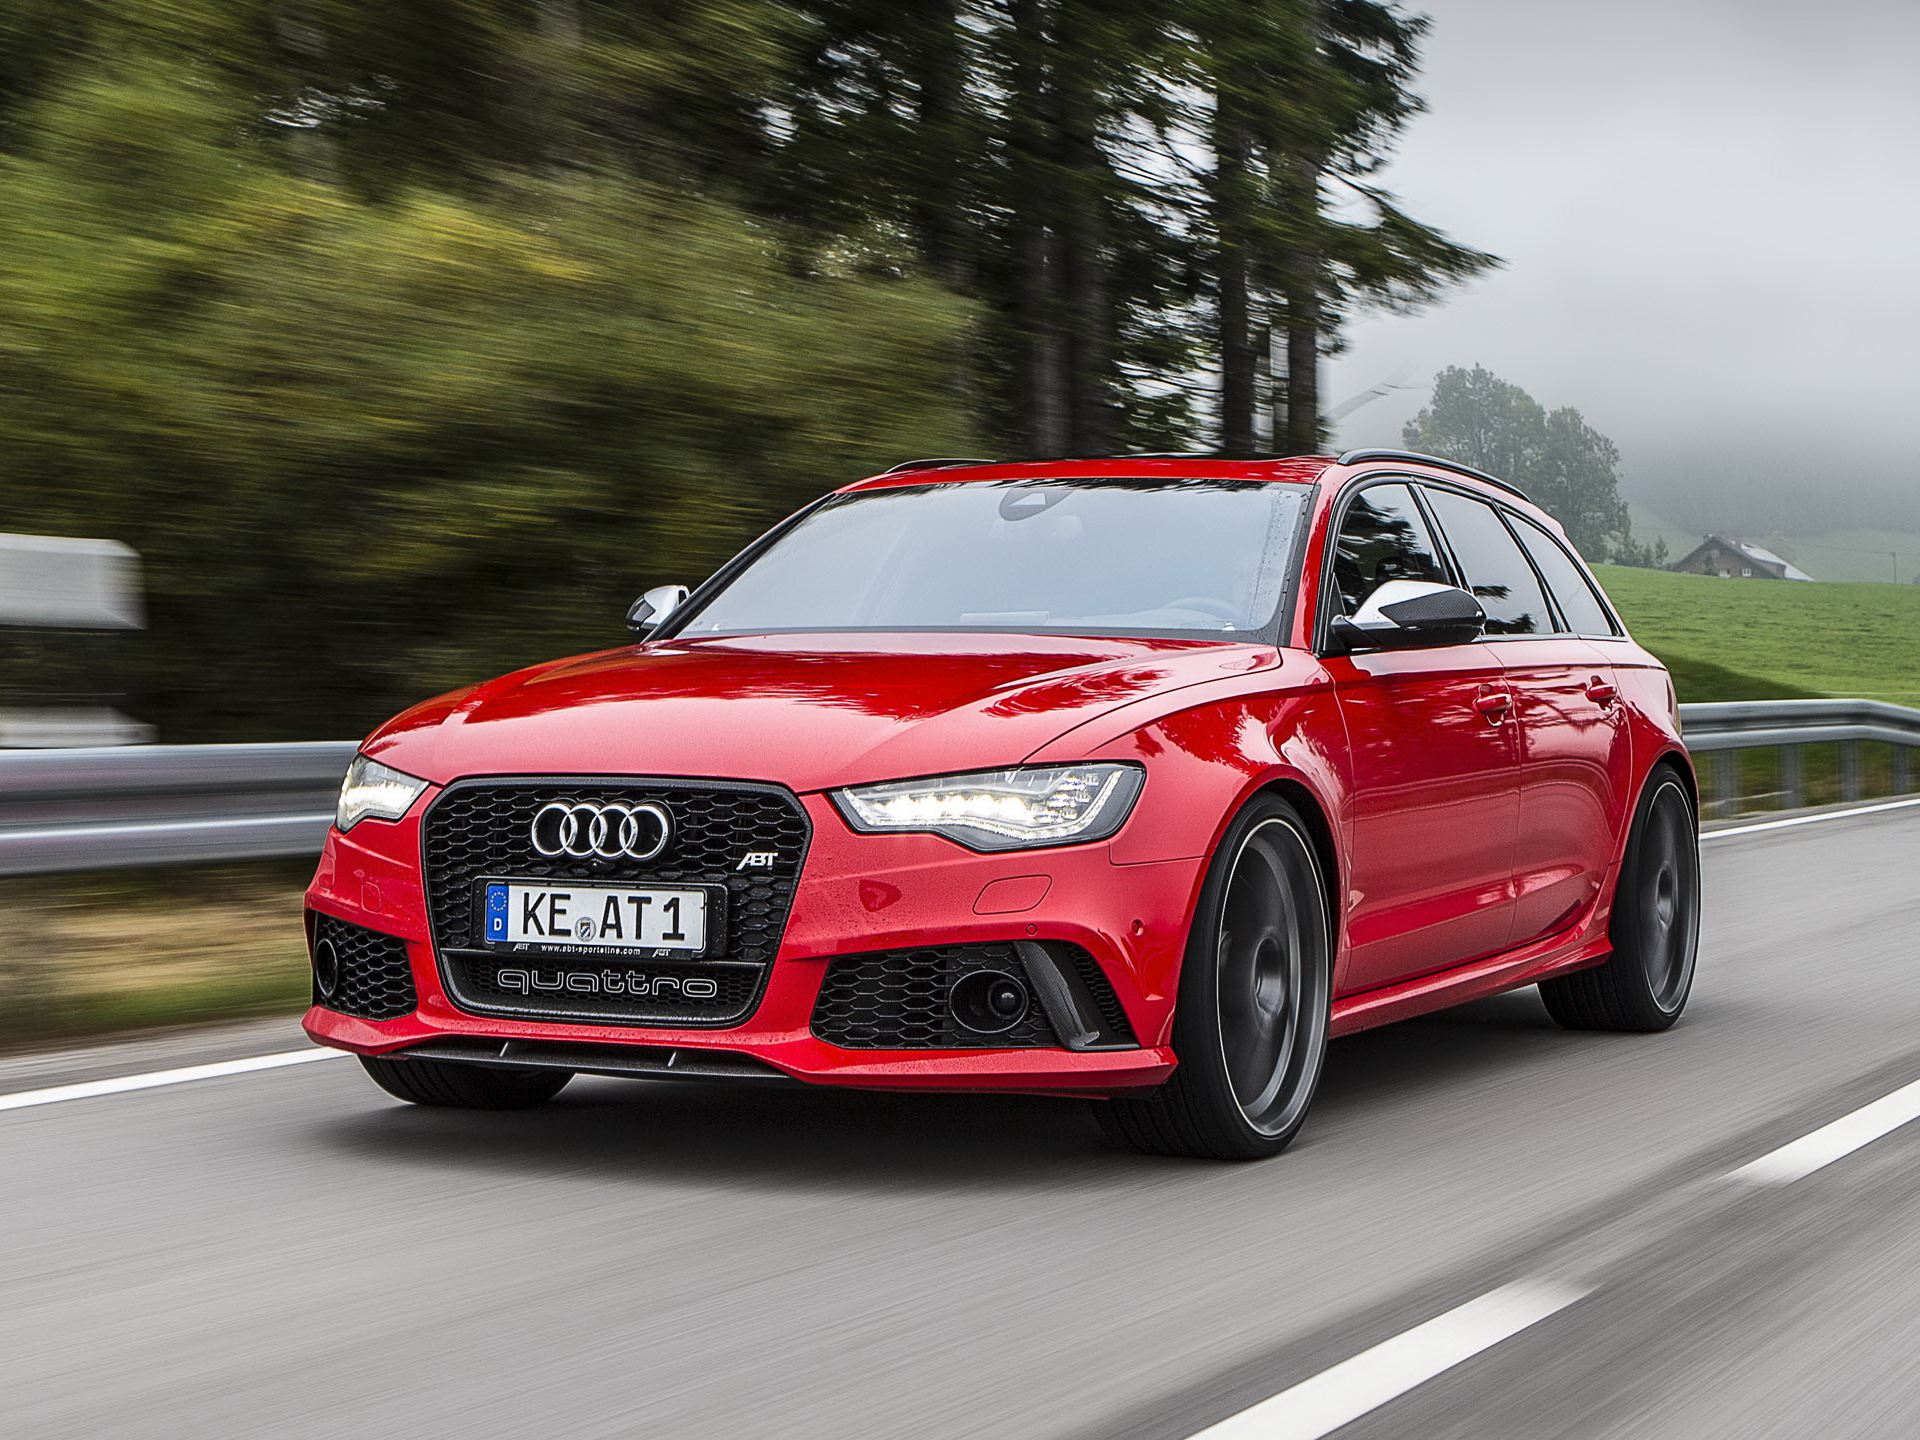 2013 ABT Audi RS6 Avant (4GC7) stationwagon tuning g wallpaper